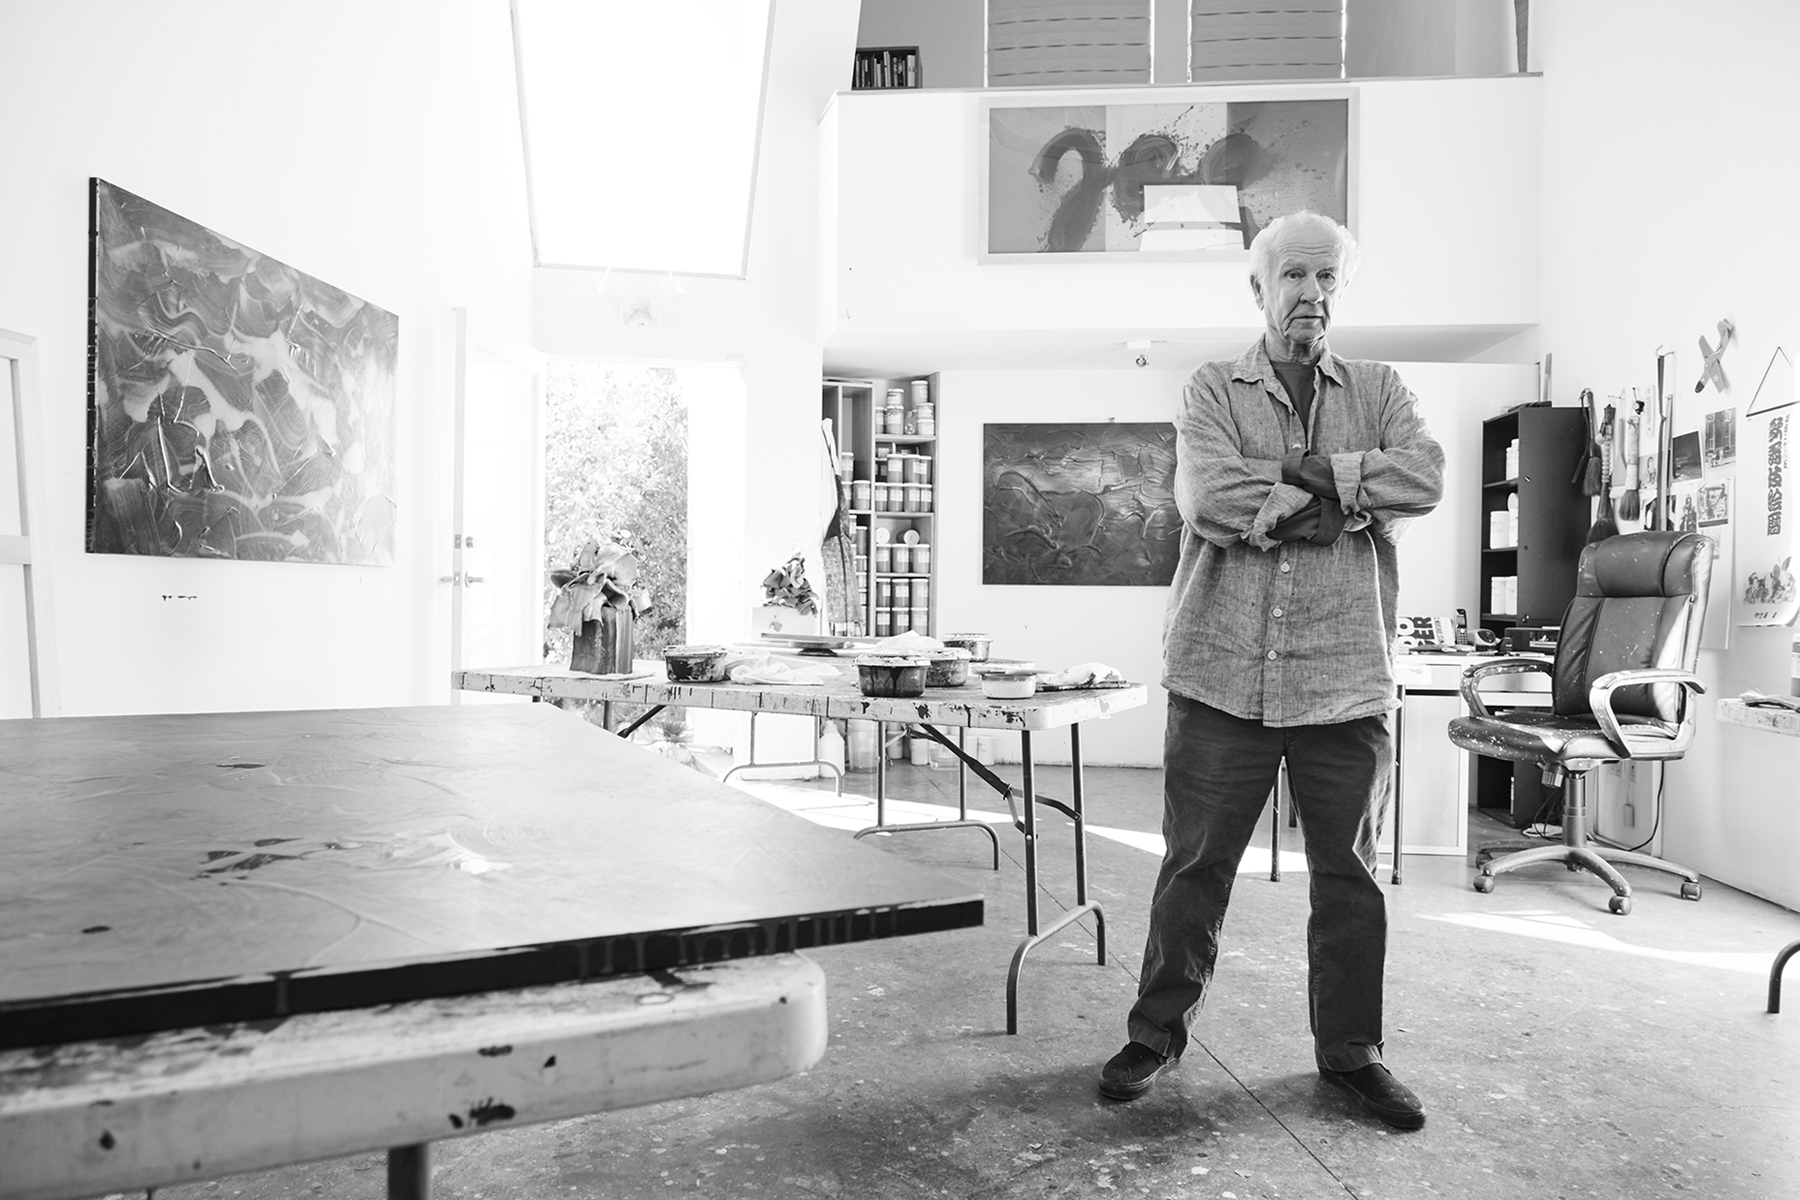 Joe in his painting studio